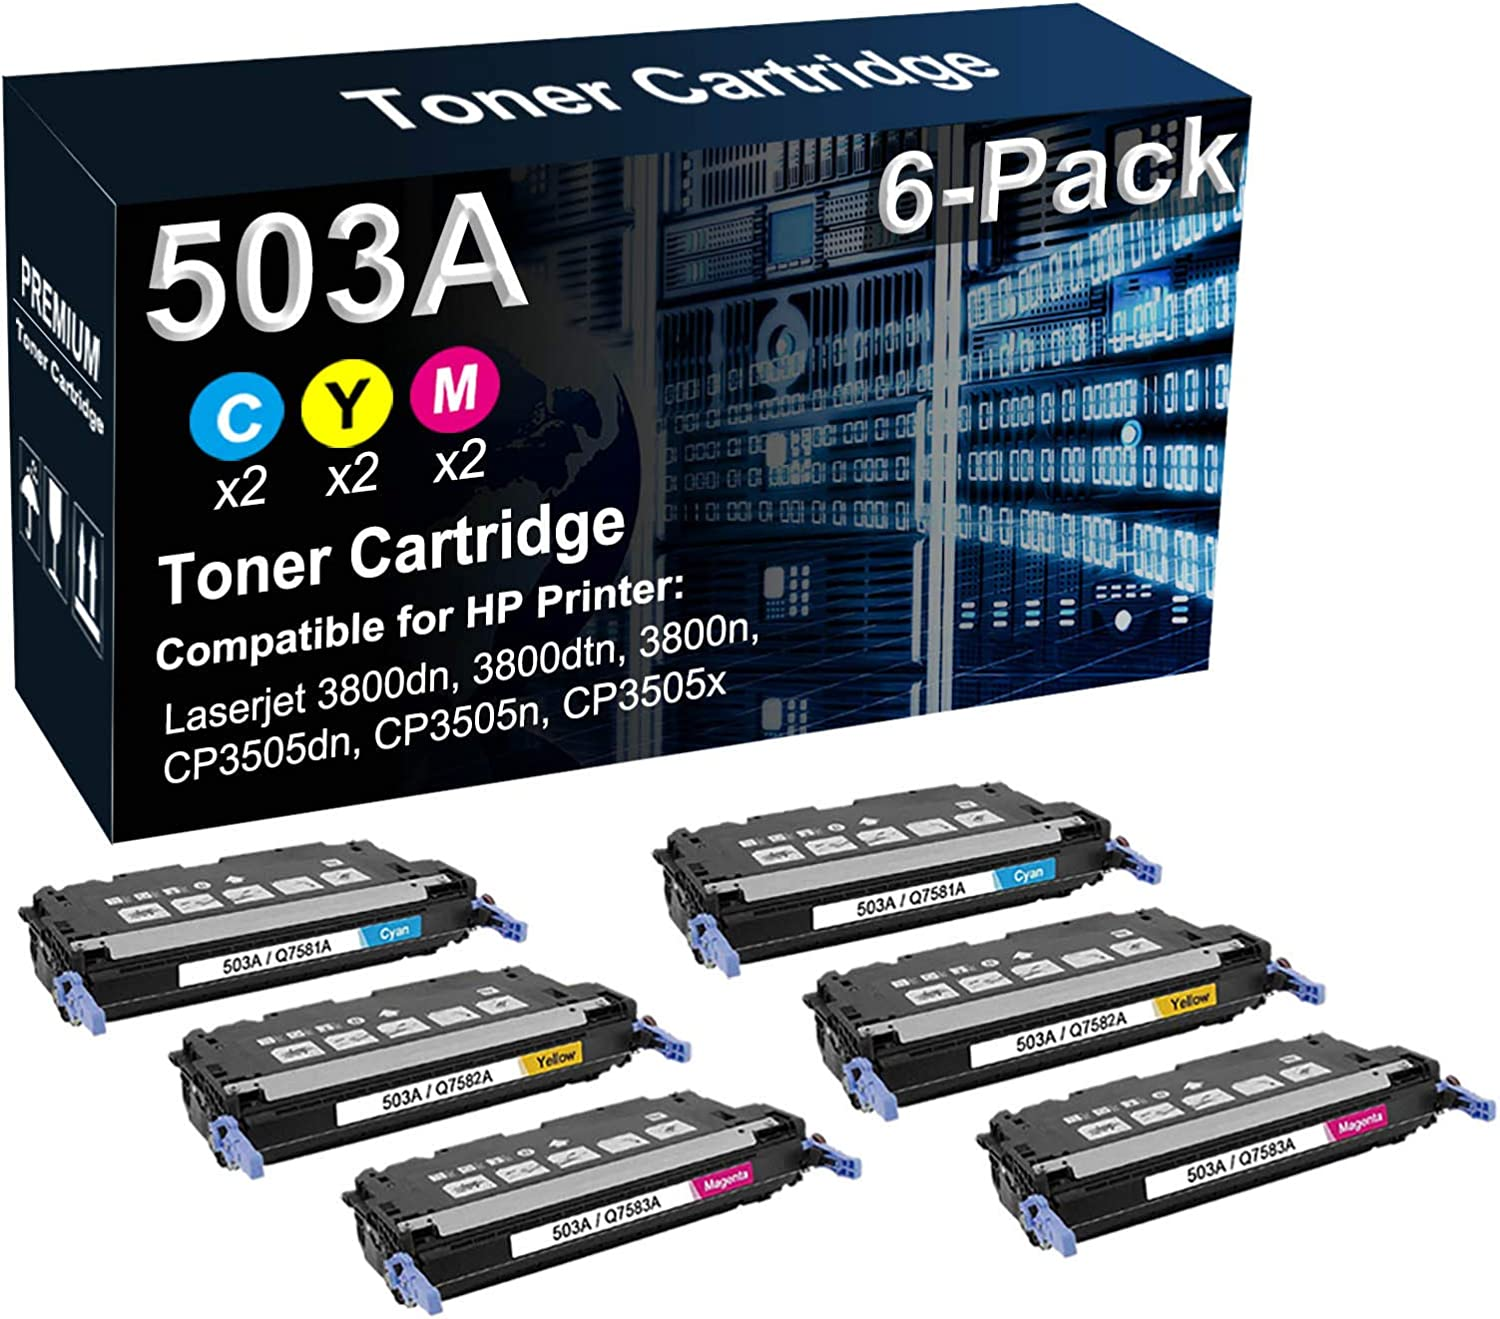 6-Pack (2C+2Y+2M) Compatible 503A (Q7581A Q7582A Q7583A) Laser Printer Toner Cartridge Used for HP 3800 3800dn 3800dtn CP3505 CP3505dn Printer (High Yield)